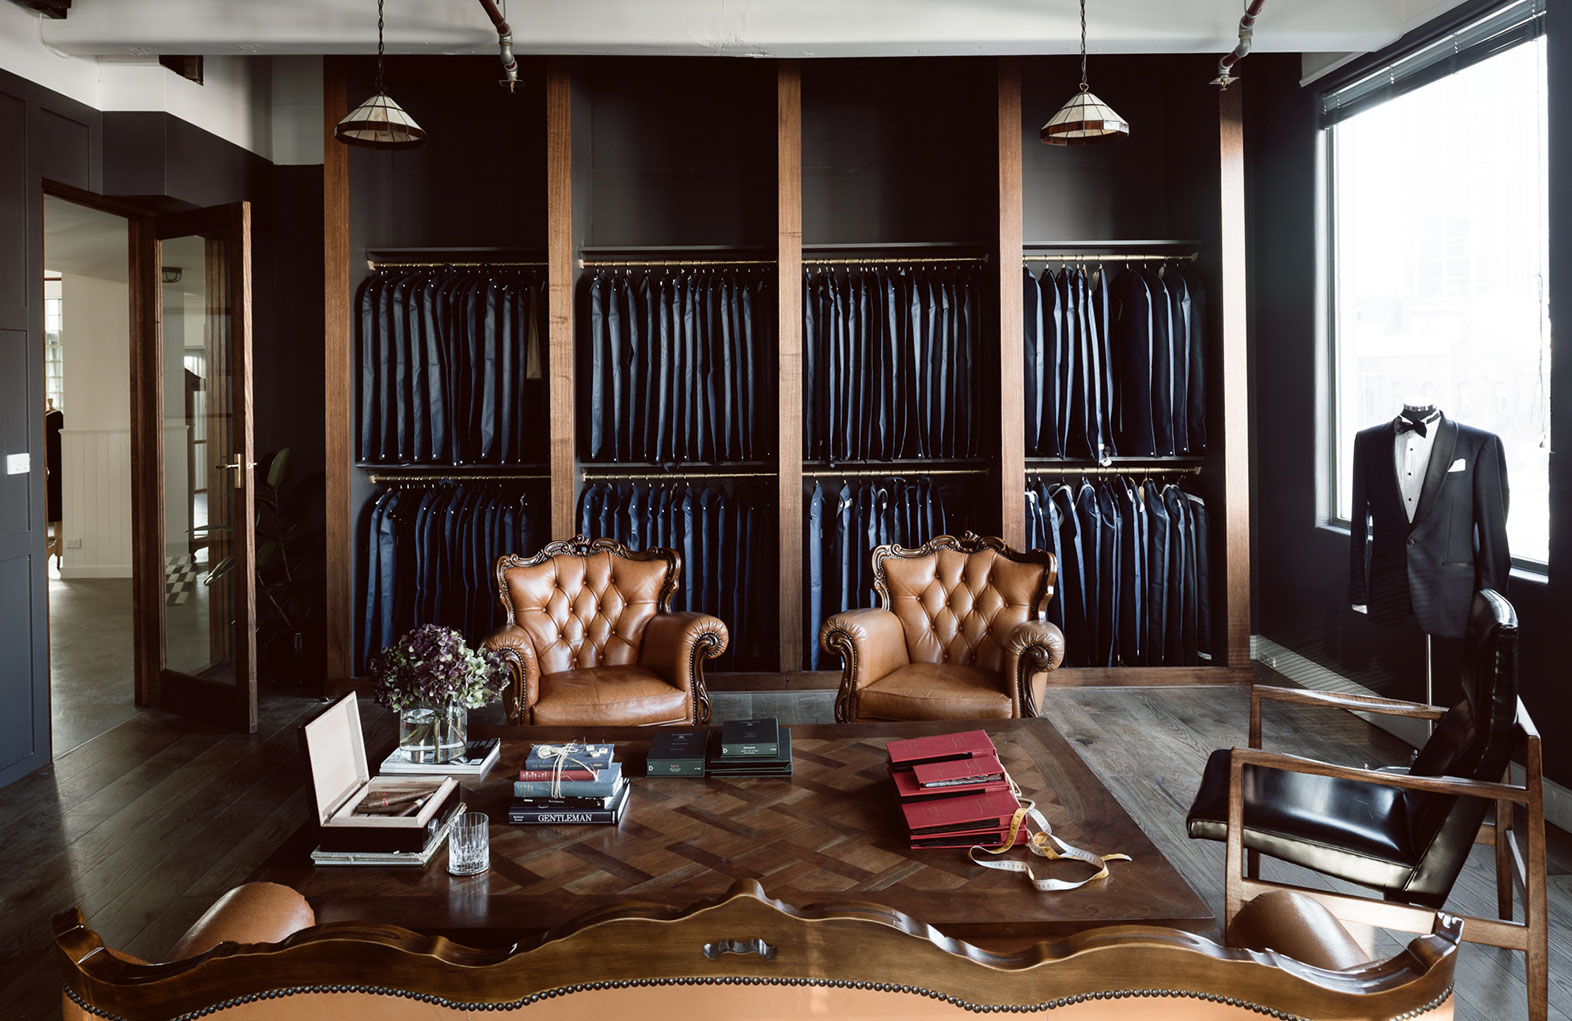 14 Best Tailors and Bespoke Suit Shops in Melbourne | Man of